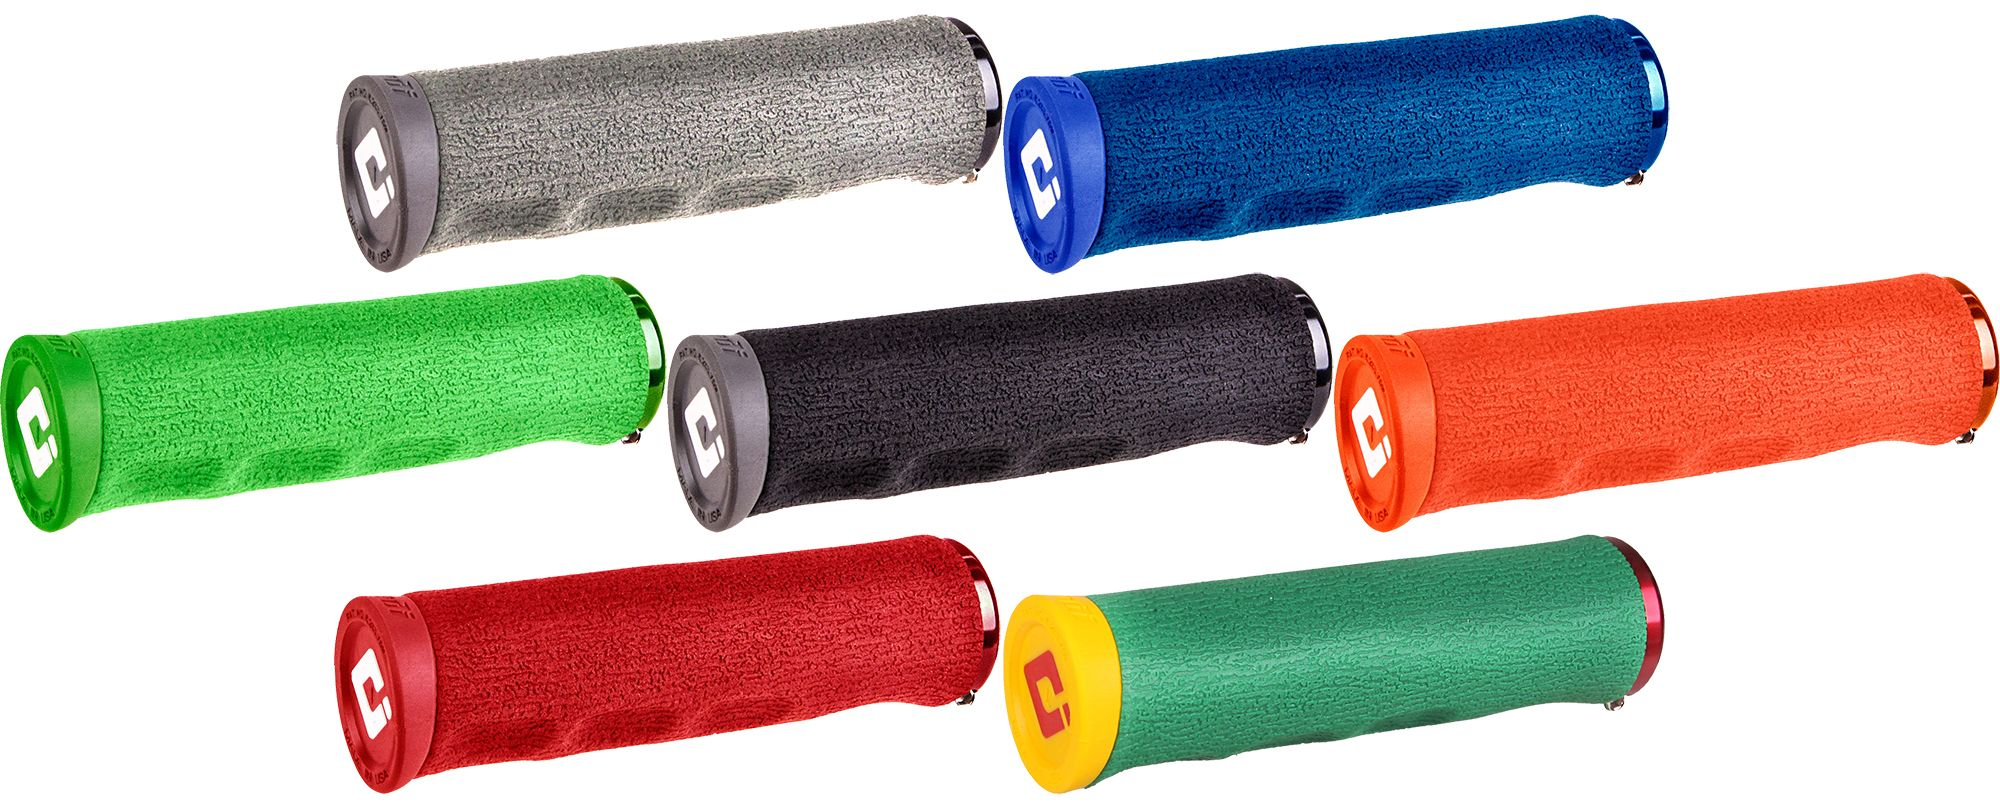 Odi Dread Lock Mtb Grips 130mm | Handles